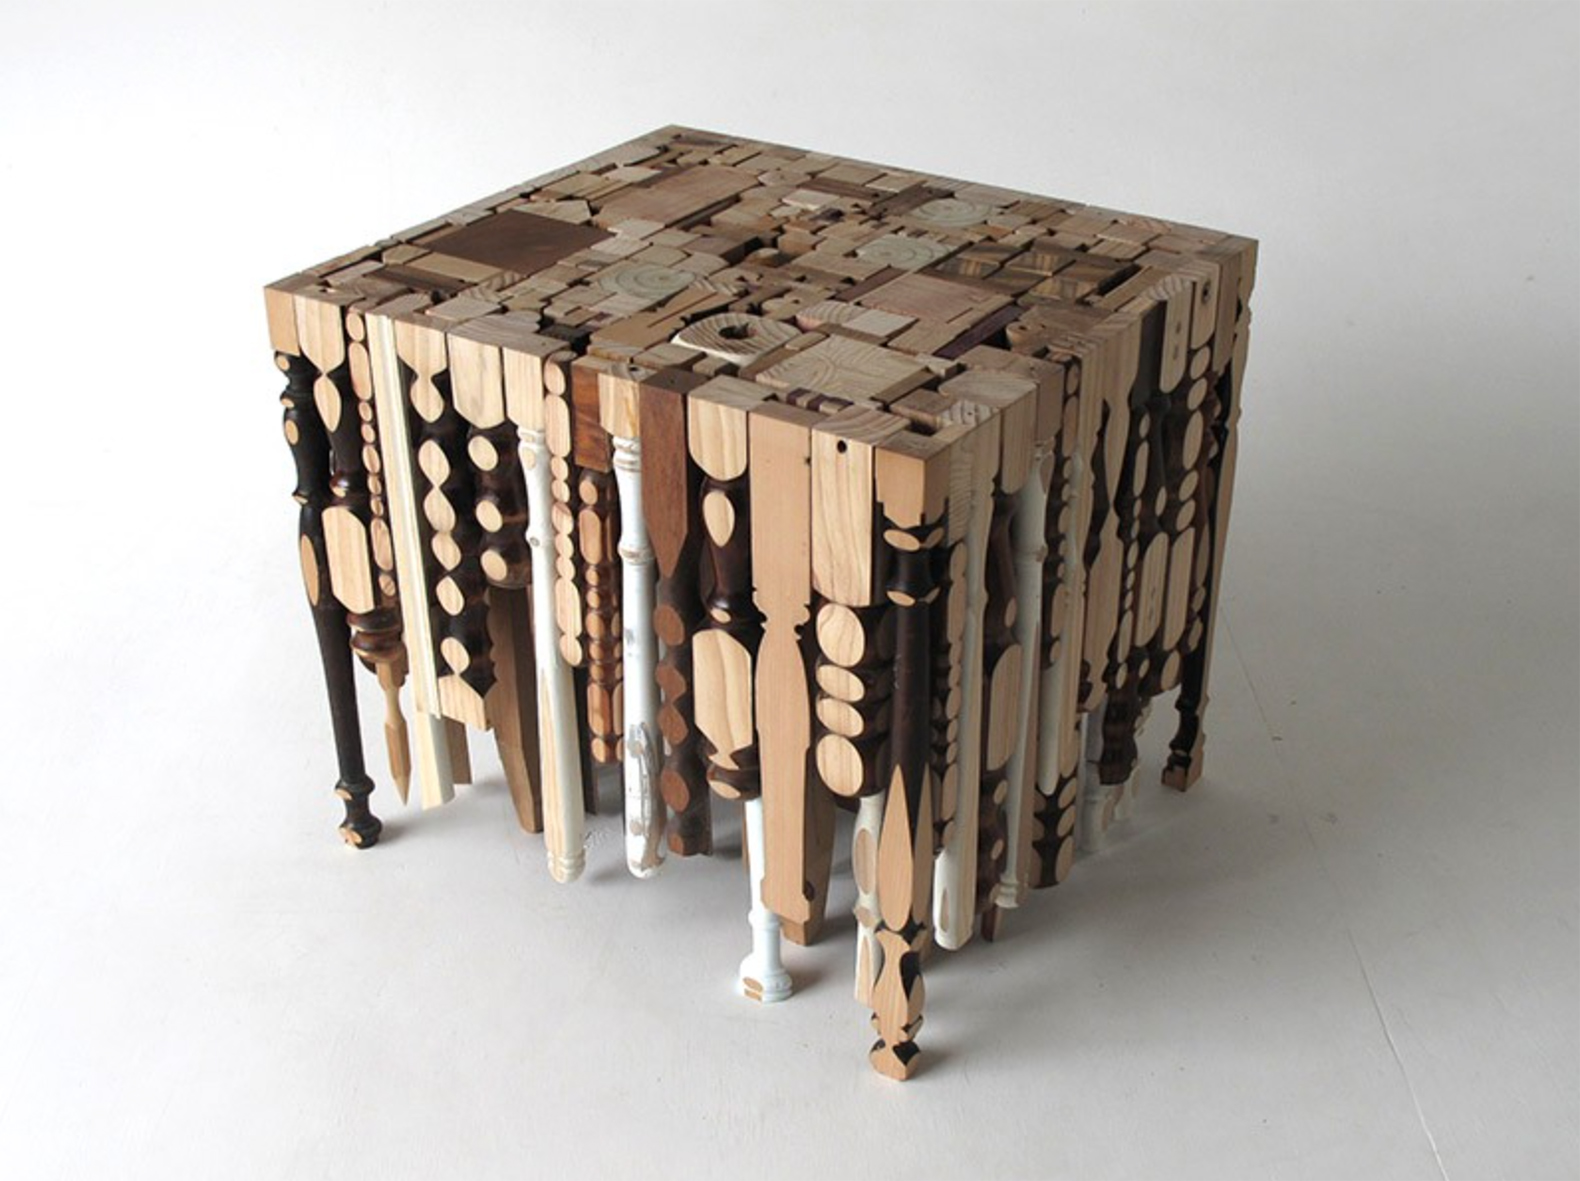 Recycled furniture inhabitat green design innovation - Furniture all design photos ...